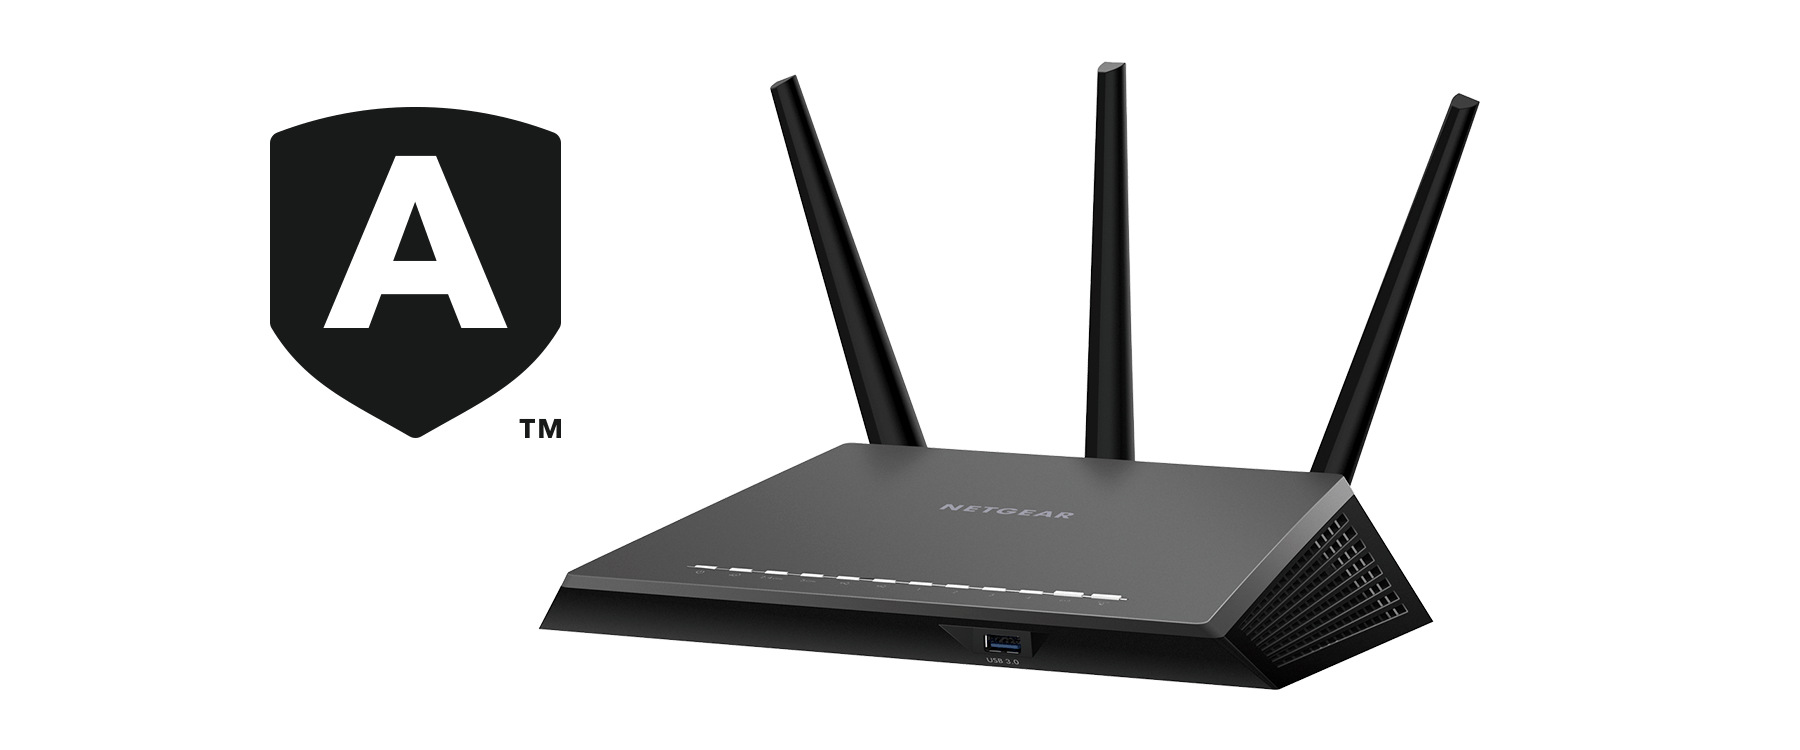 hight resolution of ac2300 nighthawk smart wifi router with netgear armor